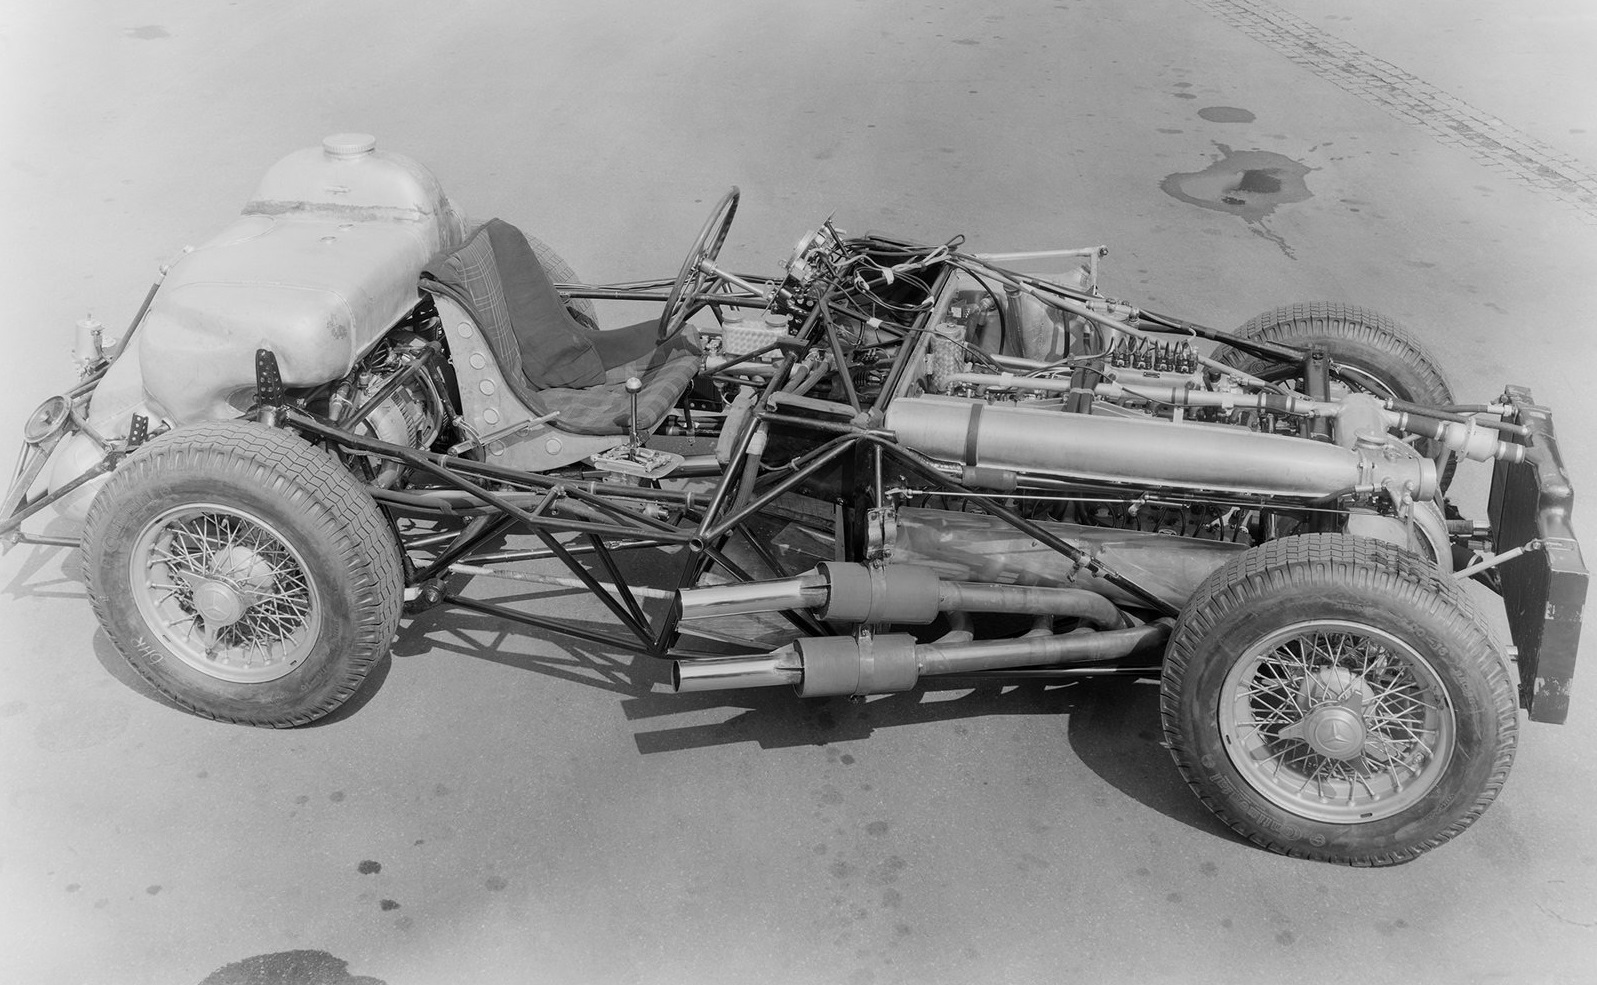 The 300SLR undressed, note the peculiar exhaust arrangement.